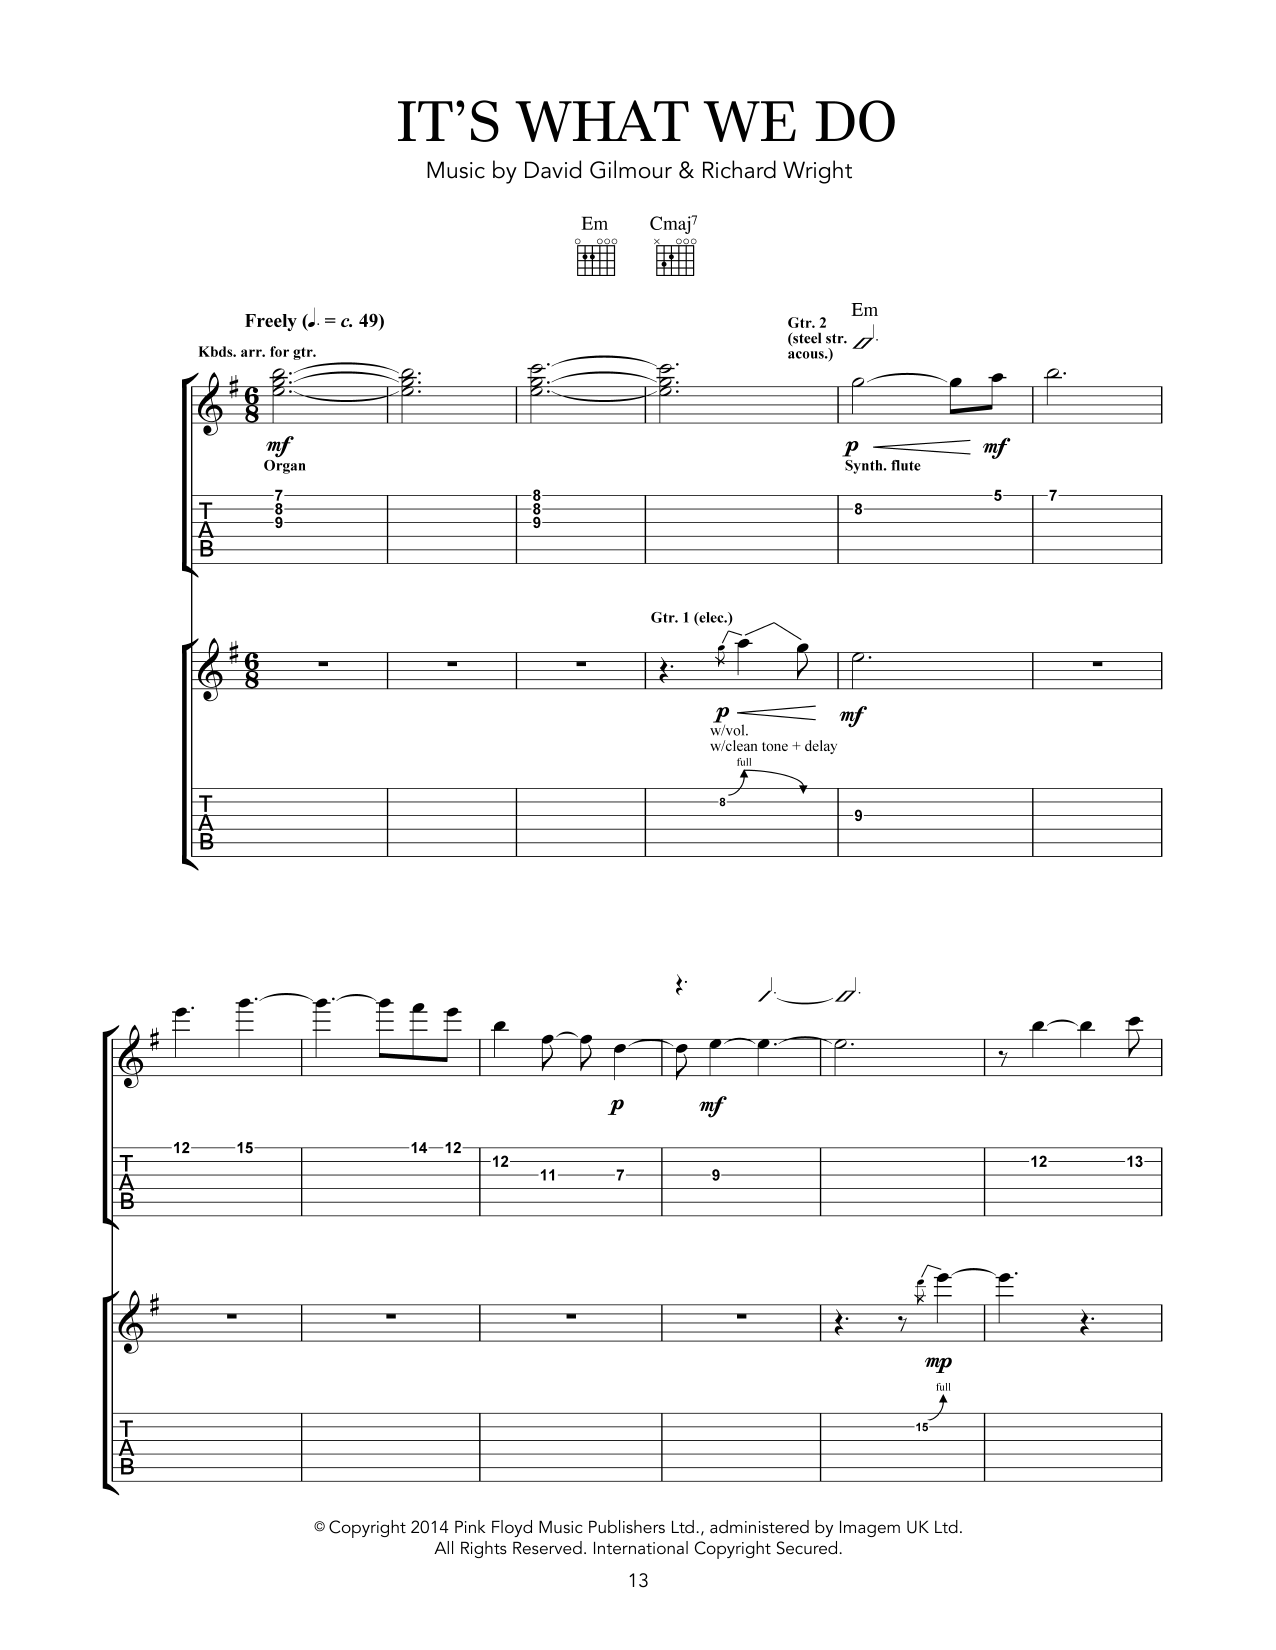 It's What We Do Sheet Music